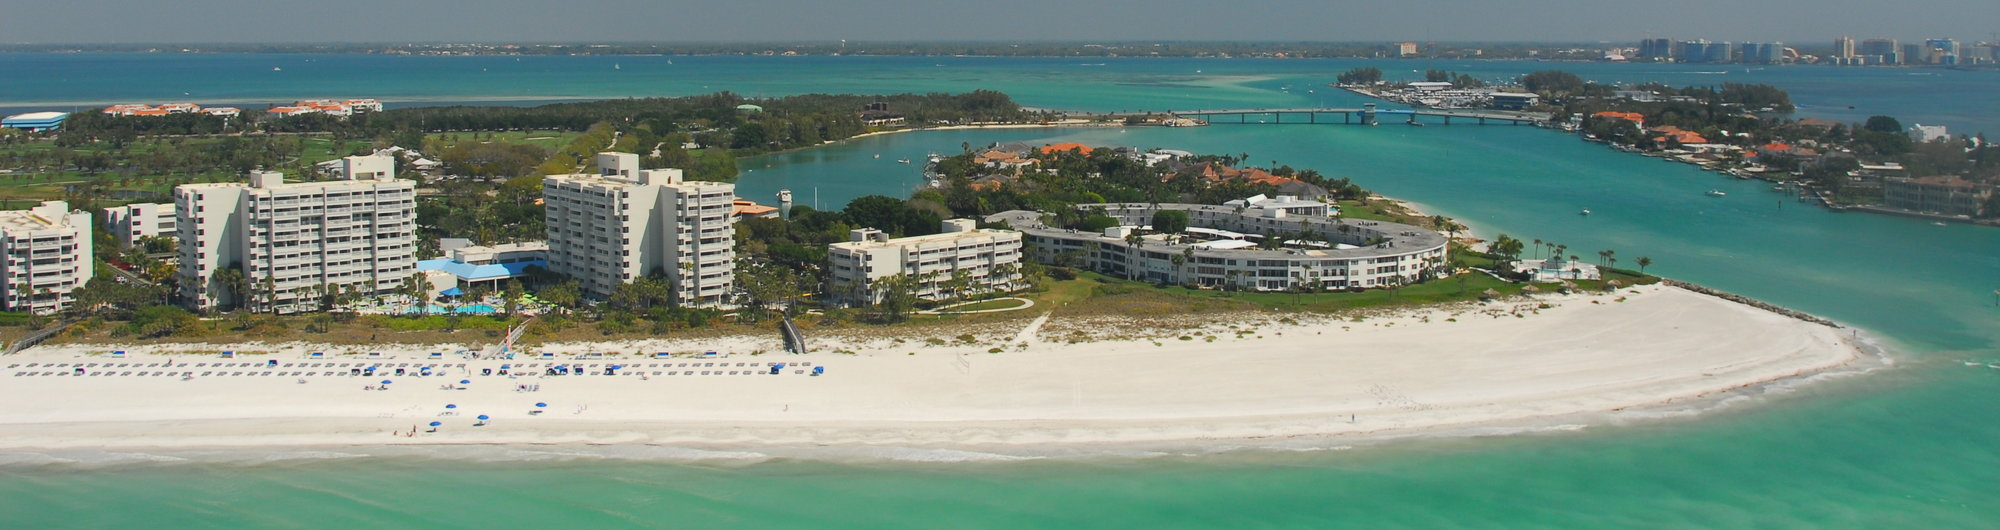 Longboat Key Club Resort Longboat Key Club Resort Condos